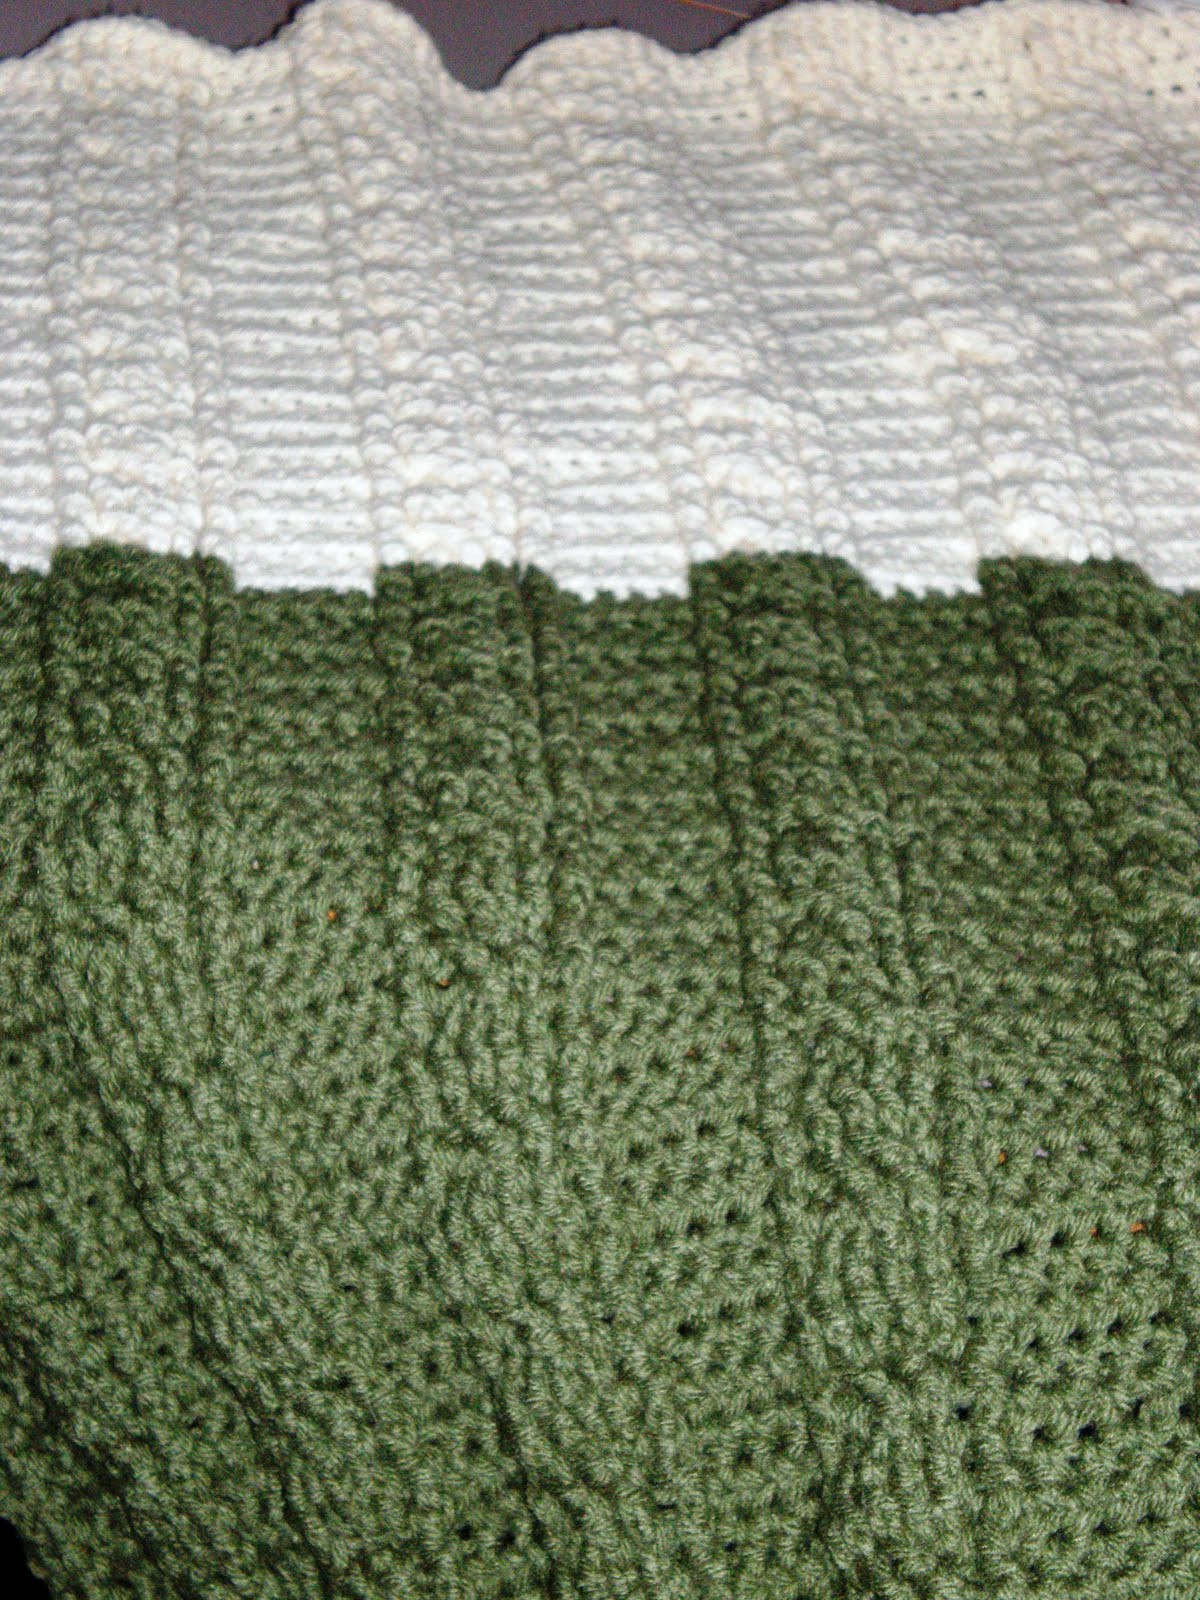 Best Of Cable Blanket Pattern Free Patterns Easy Knit Afghan Of Contemporary 50 Ideas Easy Knit Afghan